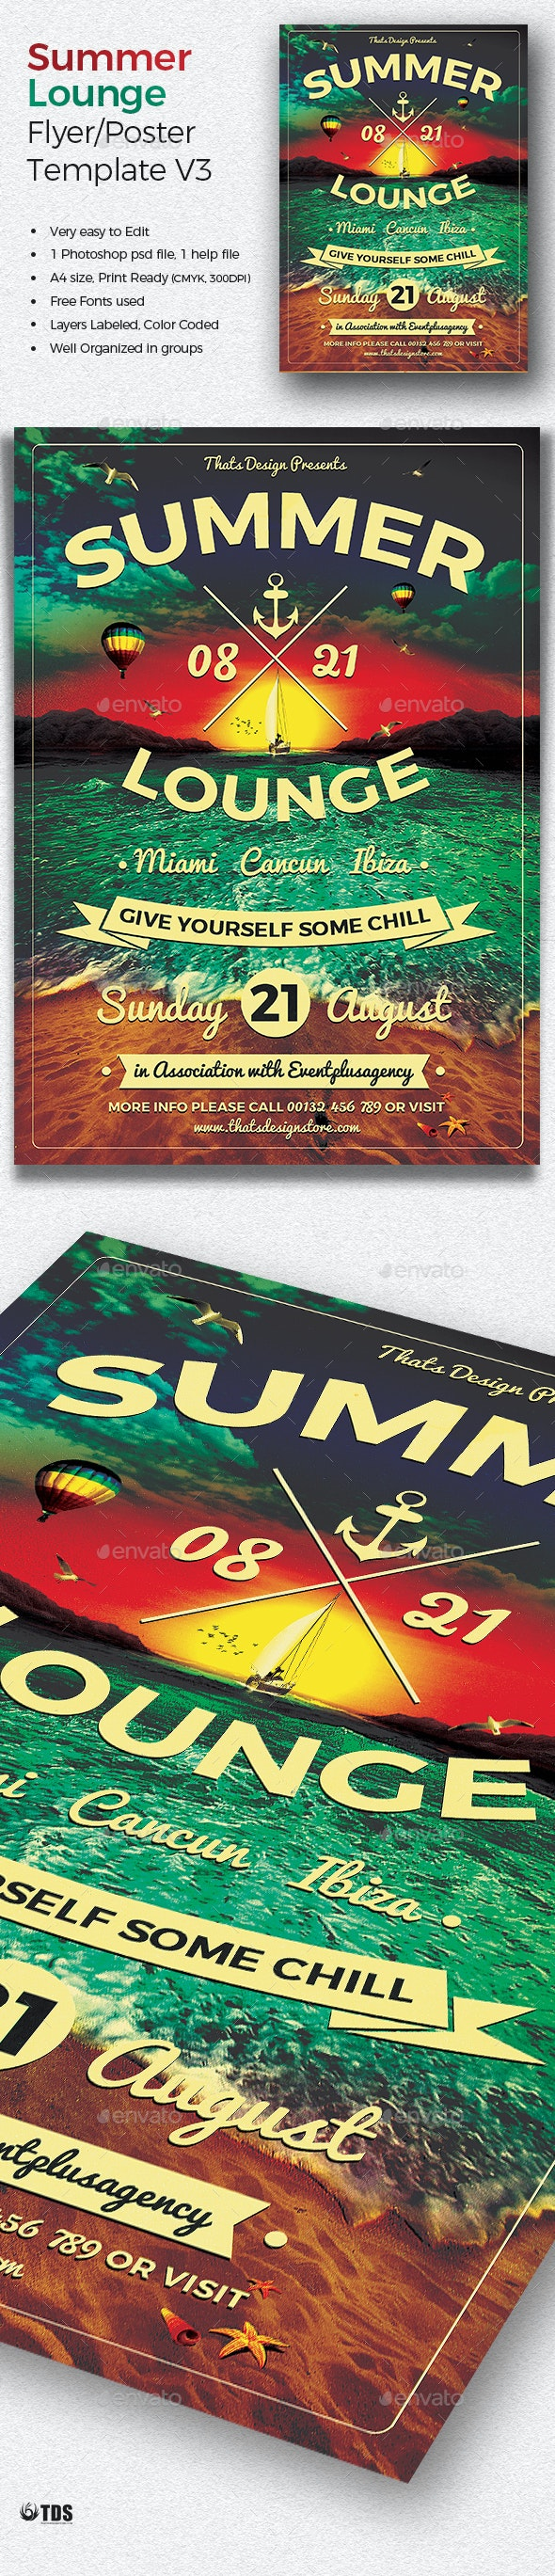 Summer Lounge Flyer Template V3 - Clubs & Parties Events